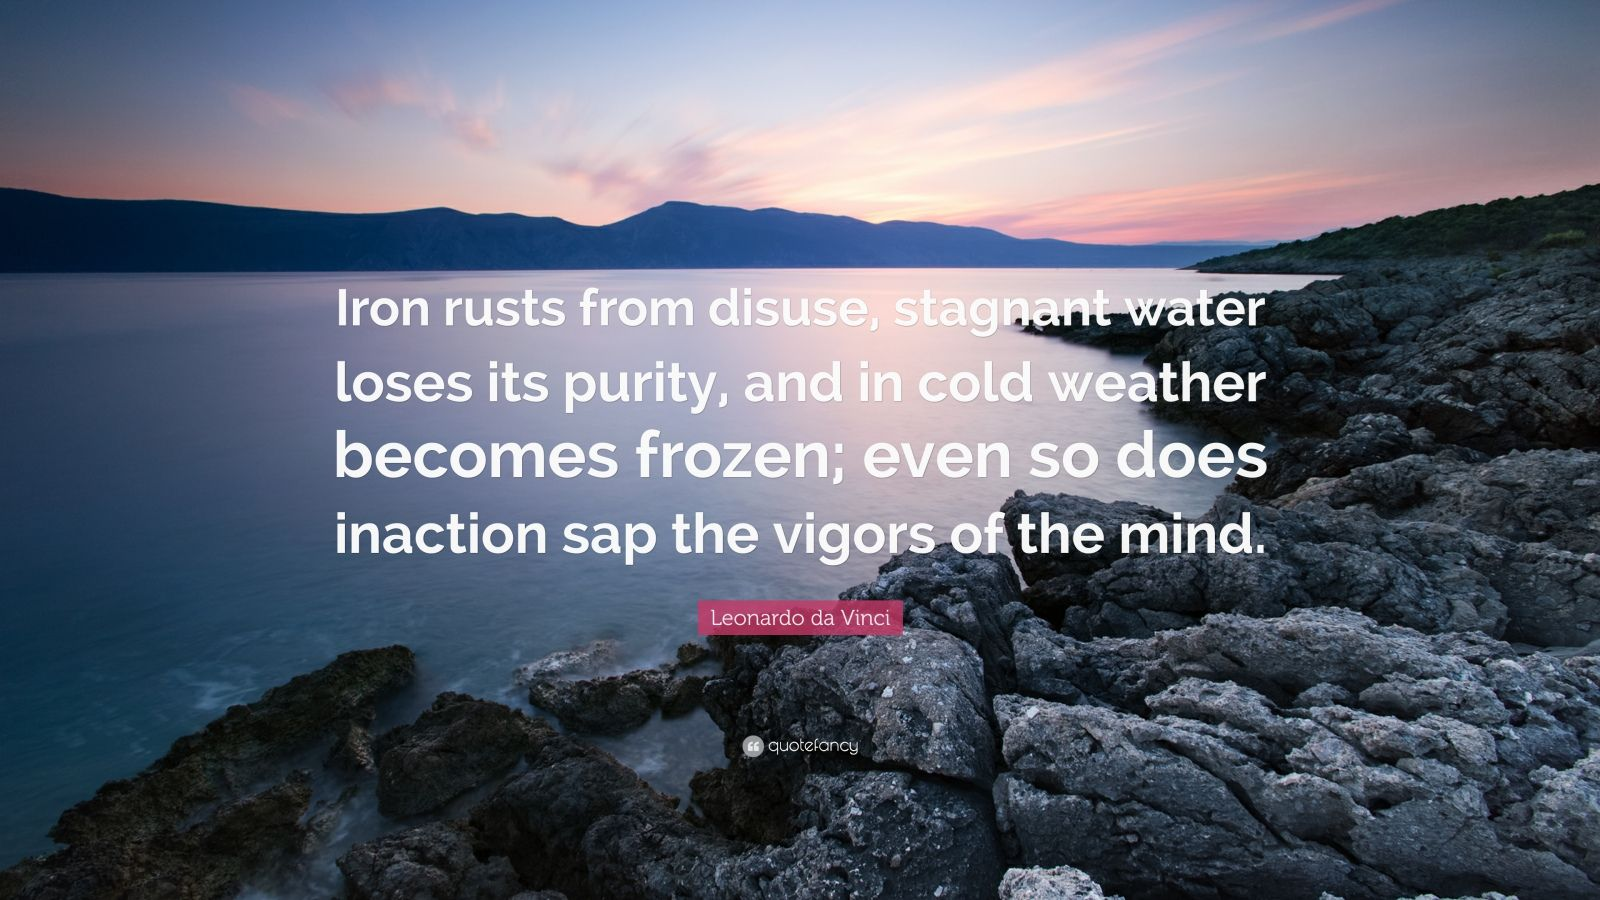 """Leonardo da Vinci Quote: """"Iron rusts from disuse, stagnant water loses its purity, and in cold weather becomes frozen; even so does inaction sap the vigors of the mind."""""""